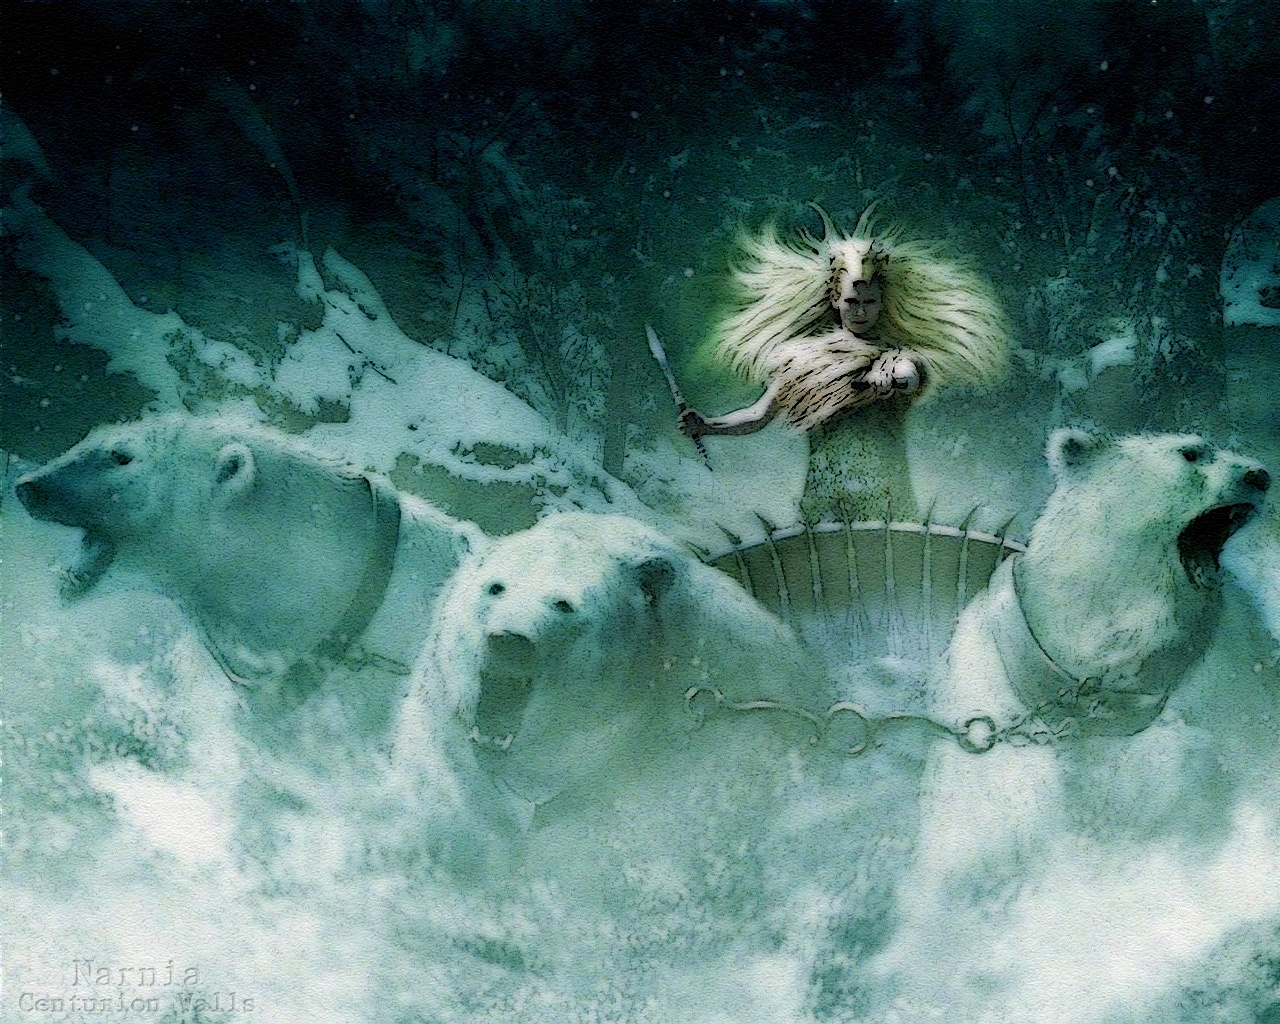 Narnia Snow Queen On Chariot